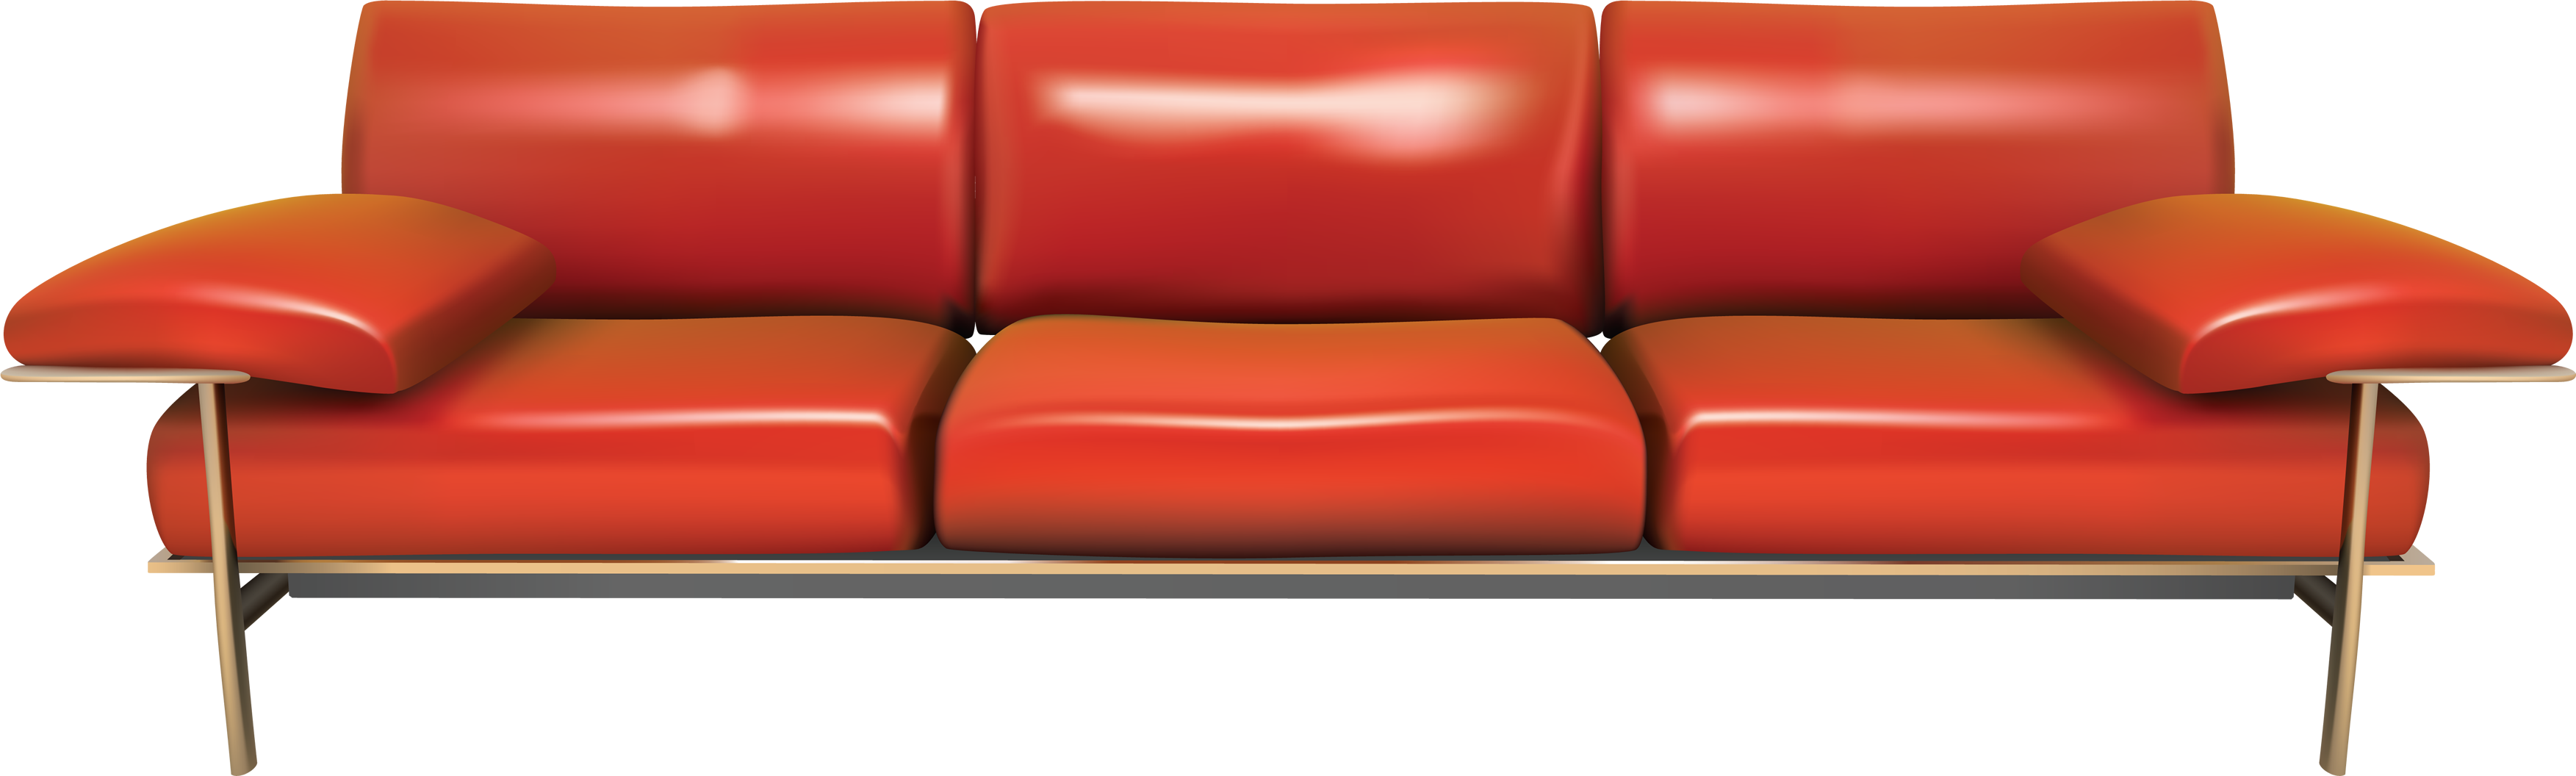 Red couch png. Sofa images free download